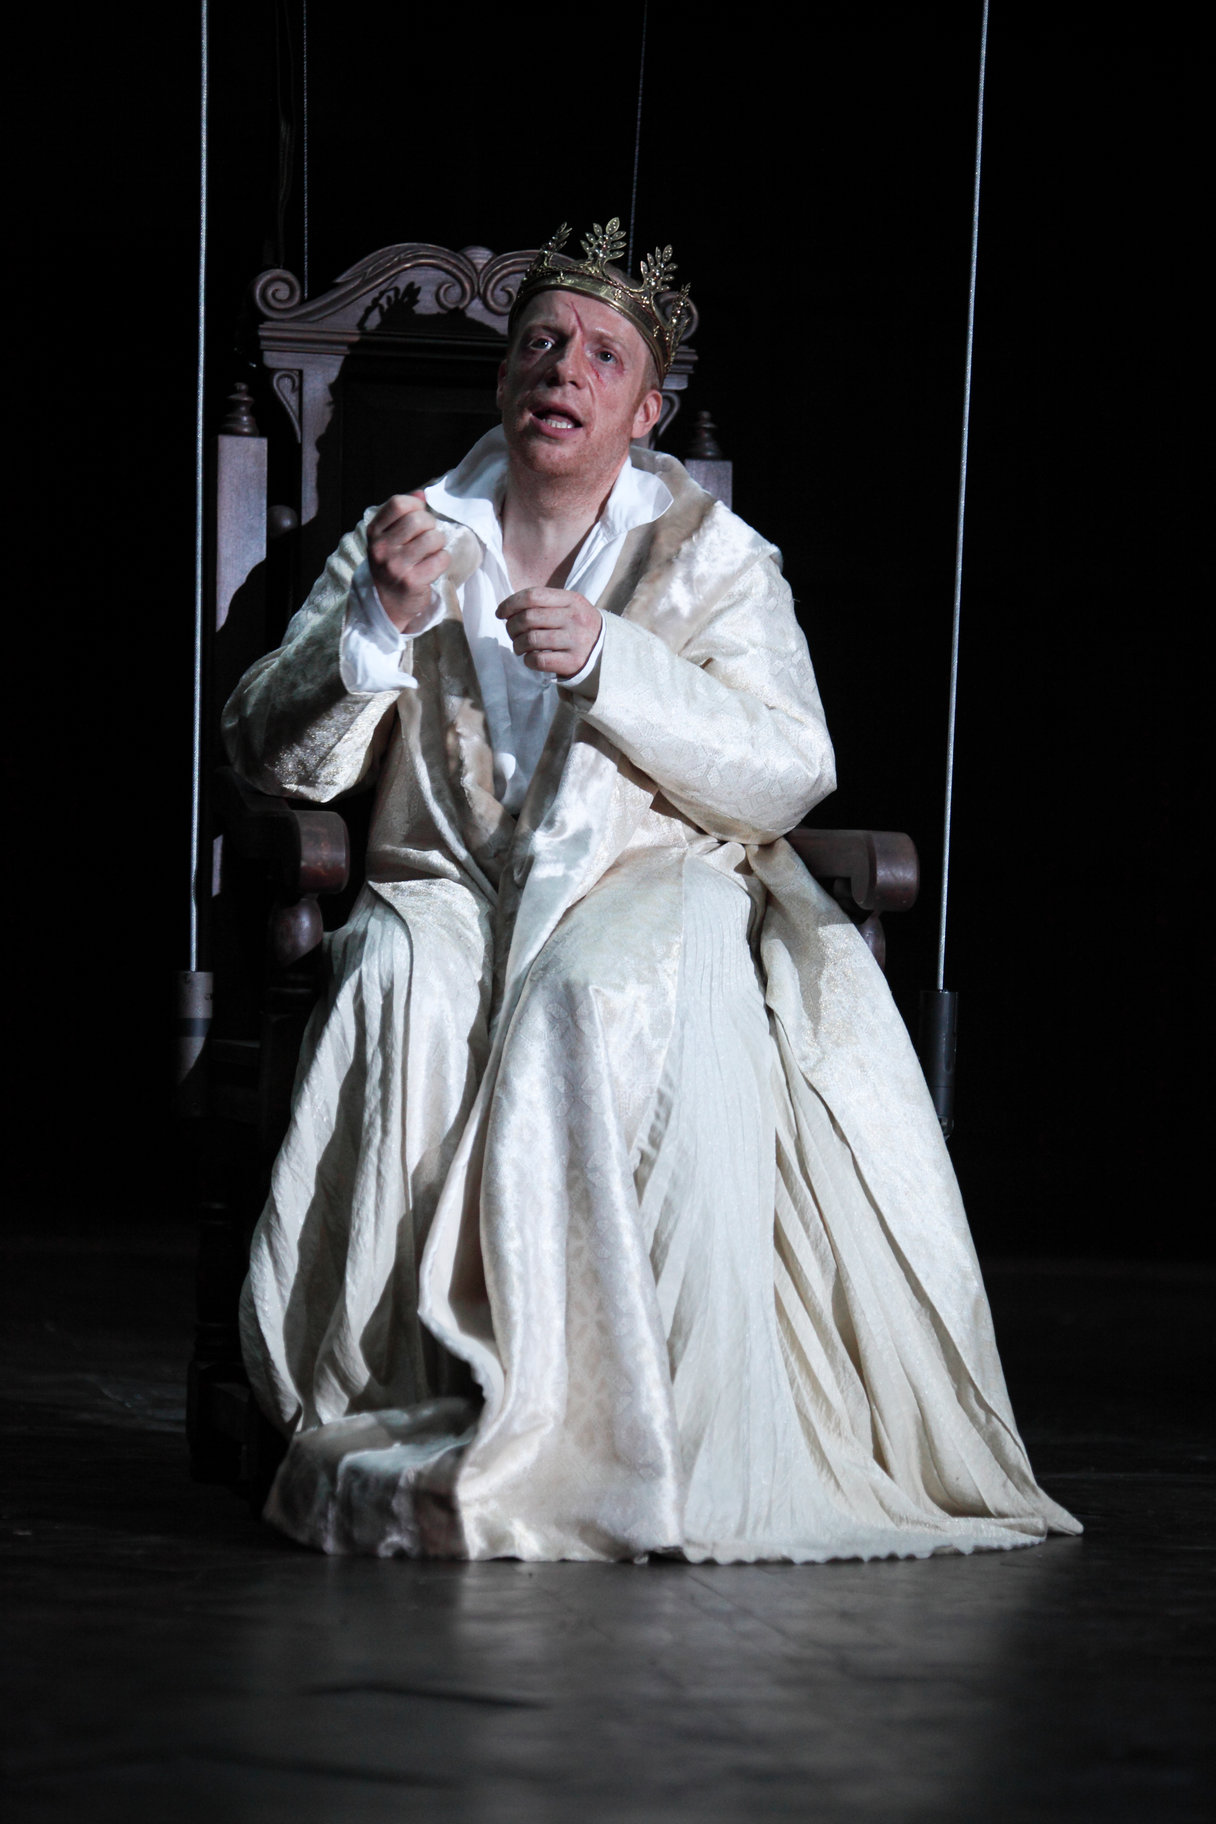 Macbeth on his throne in white gown and golden crown